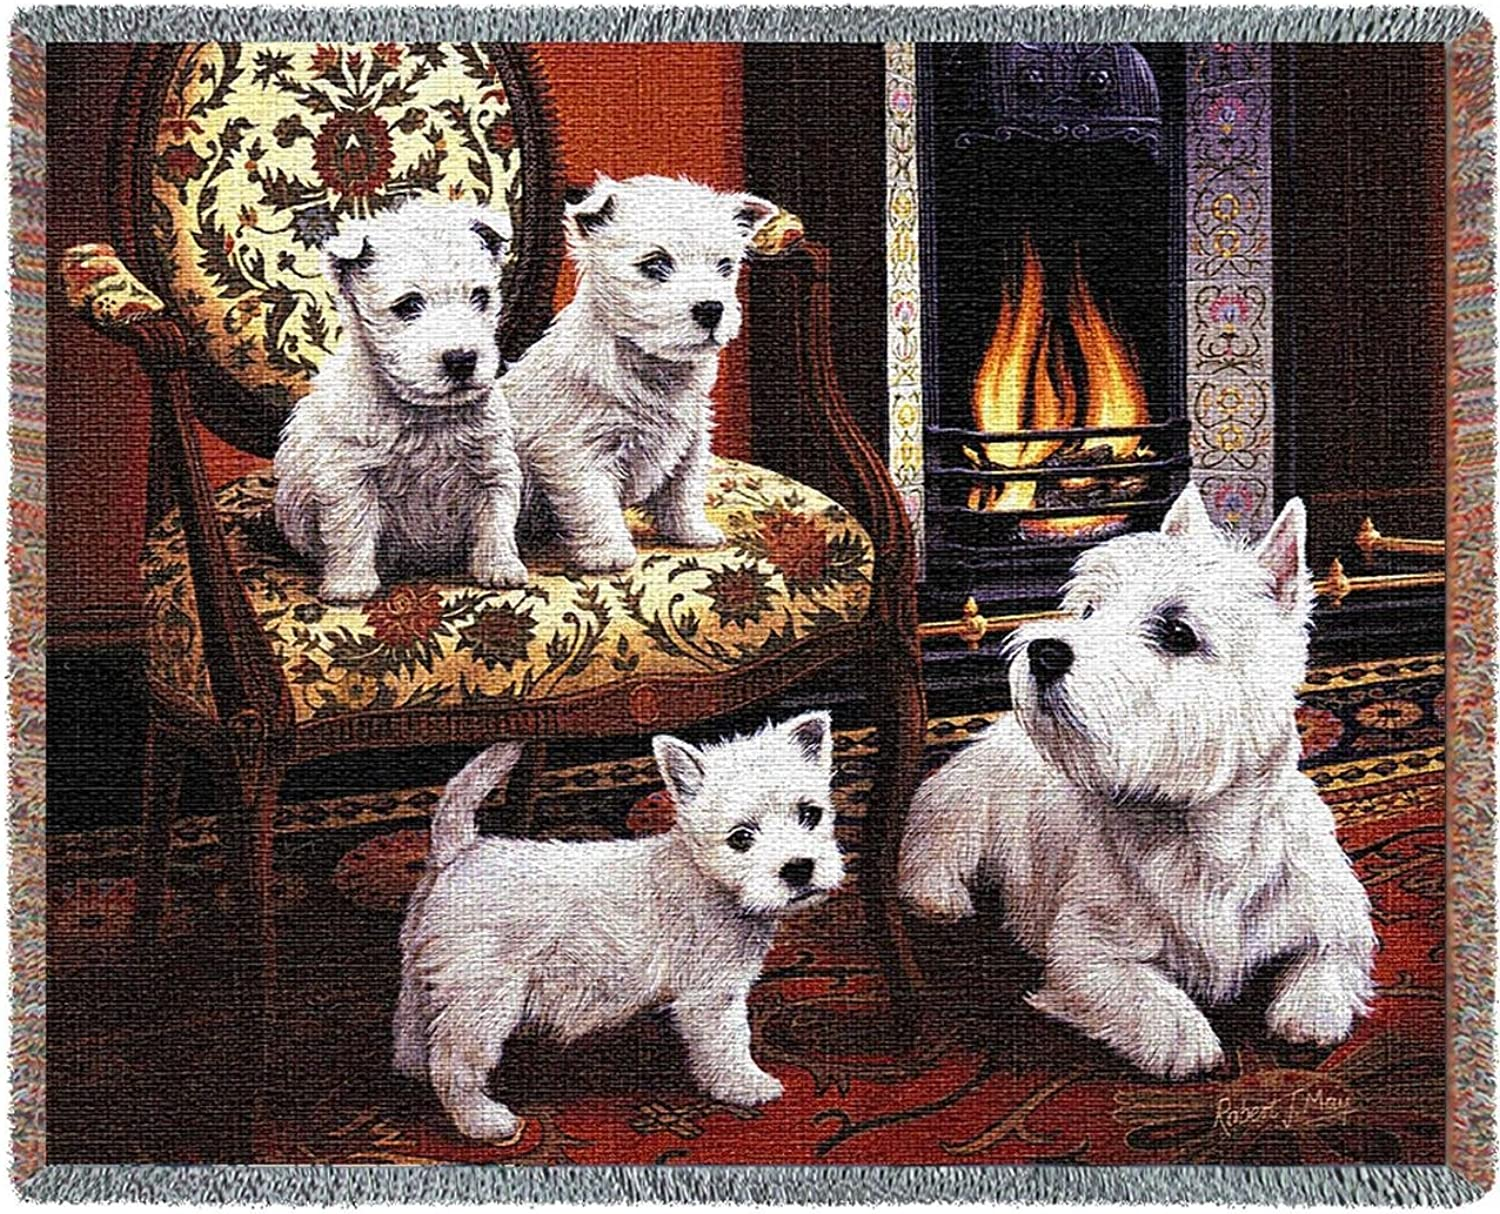 Pure Country Weavers - West Highland White Terrier Woven Tapestry Throw Blanket with Fringe Cotton USA Size 72 x 54